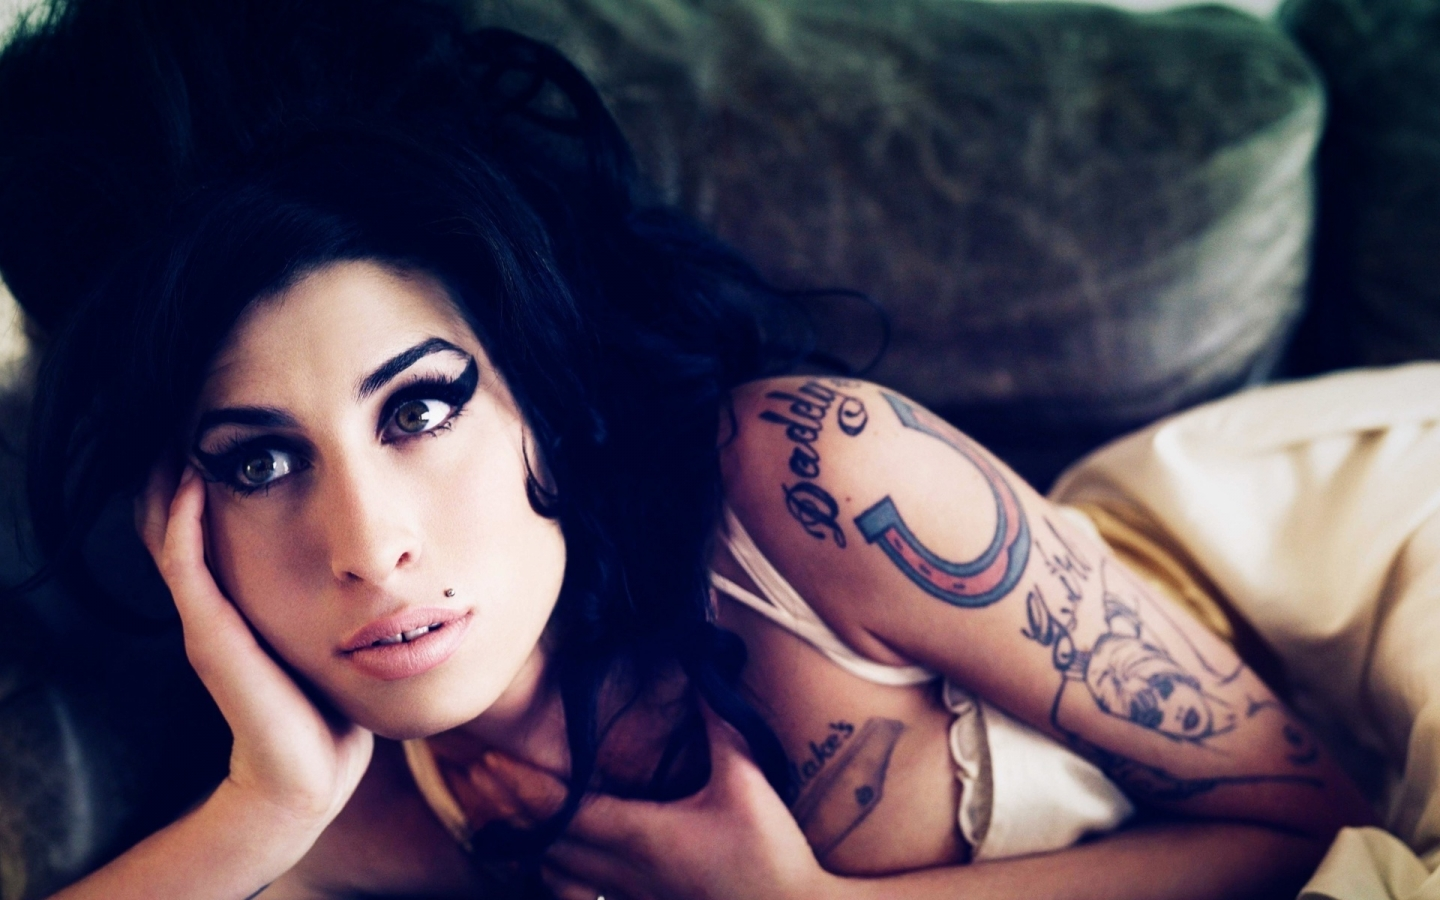 Beautiful Amy Winehouse for 1440 x 900 widescreen resolution